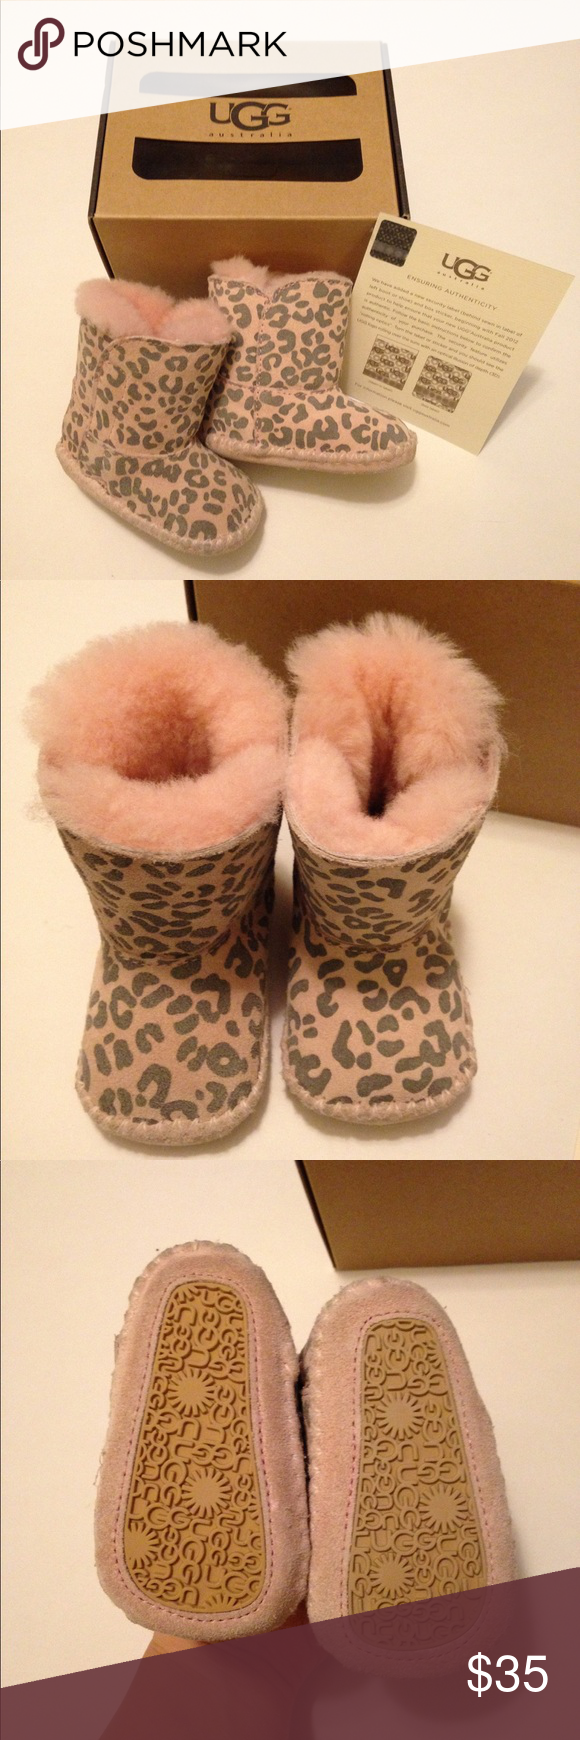 3ae904d688e Infant UGG Booties Infant Cassie Leopard pink UGG boots, size 0/1 XS ...